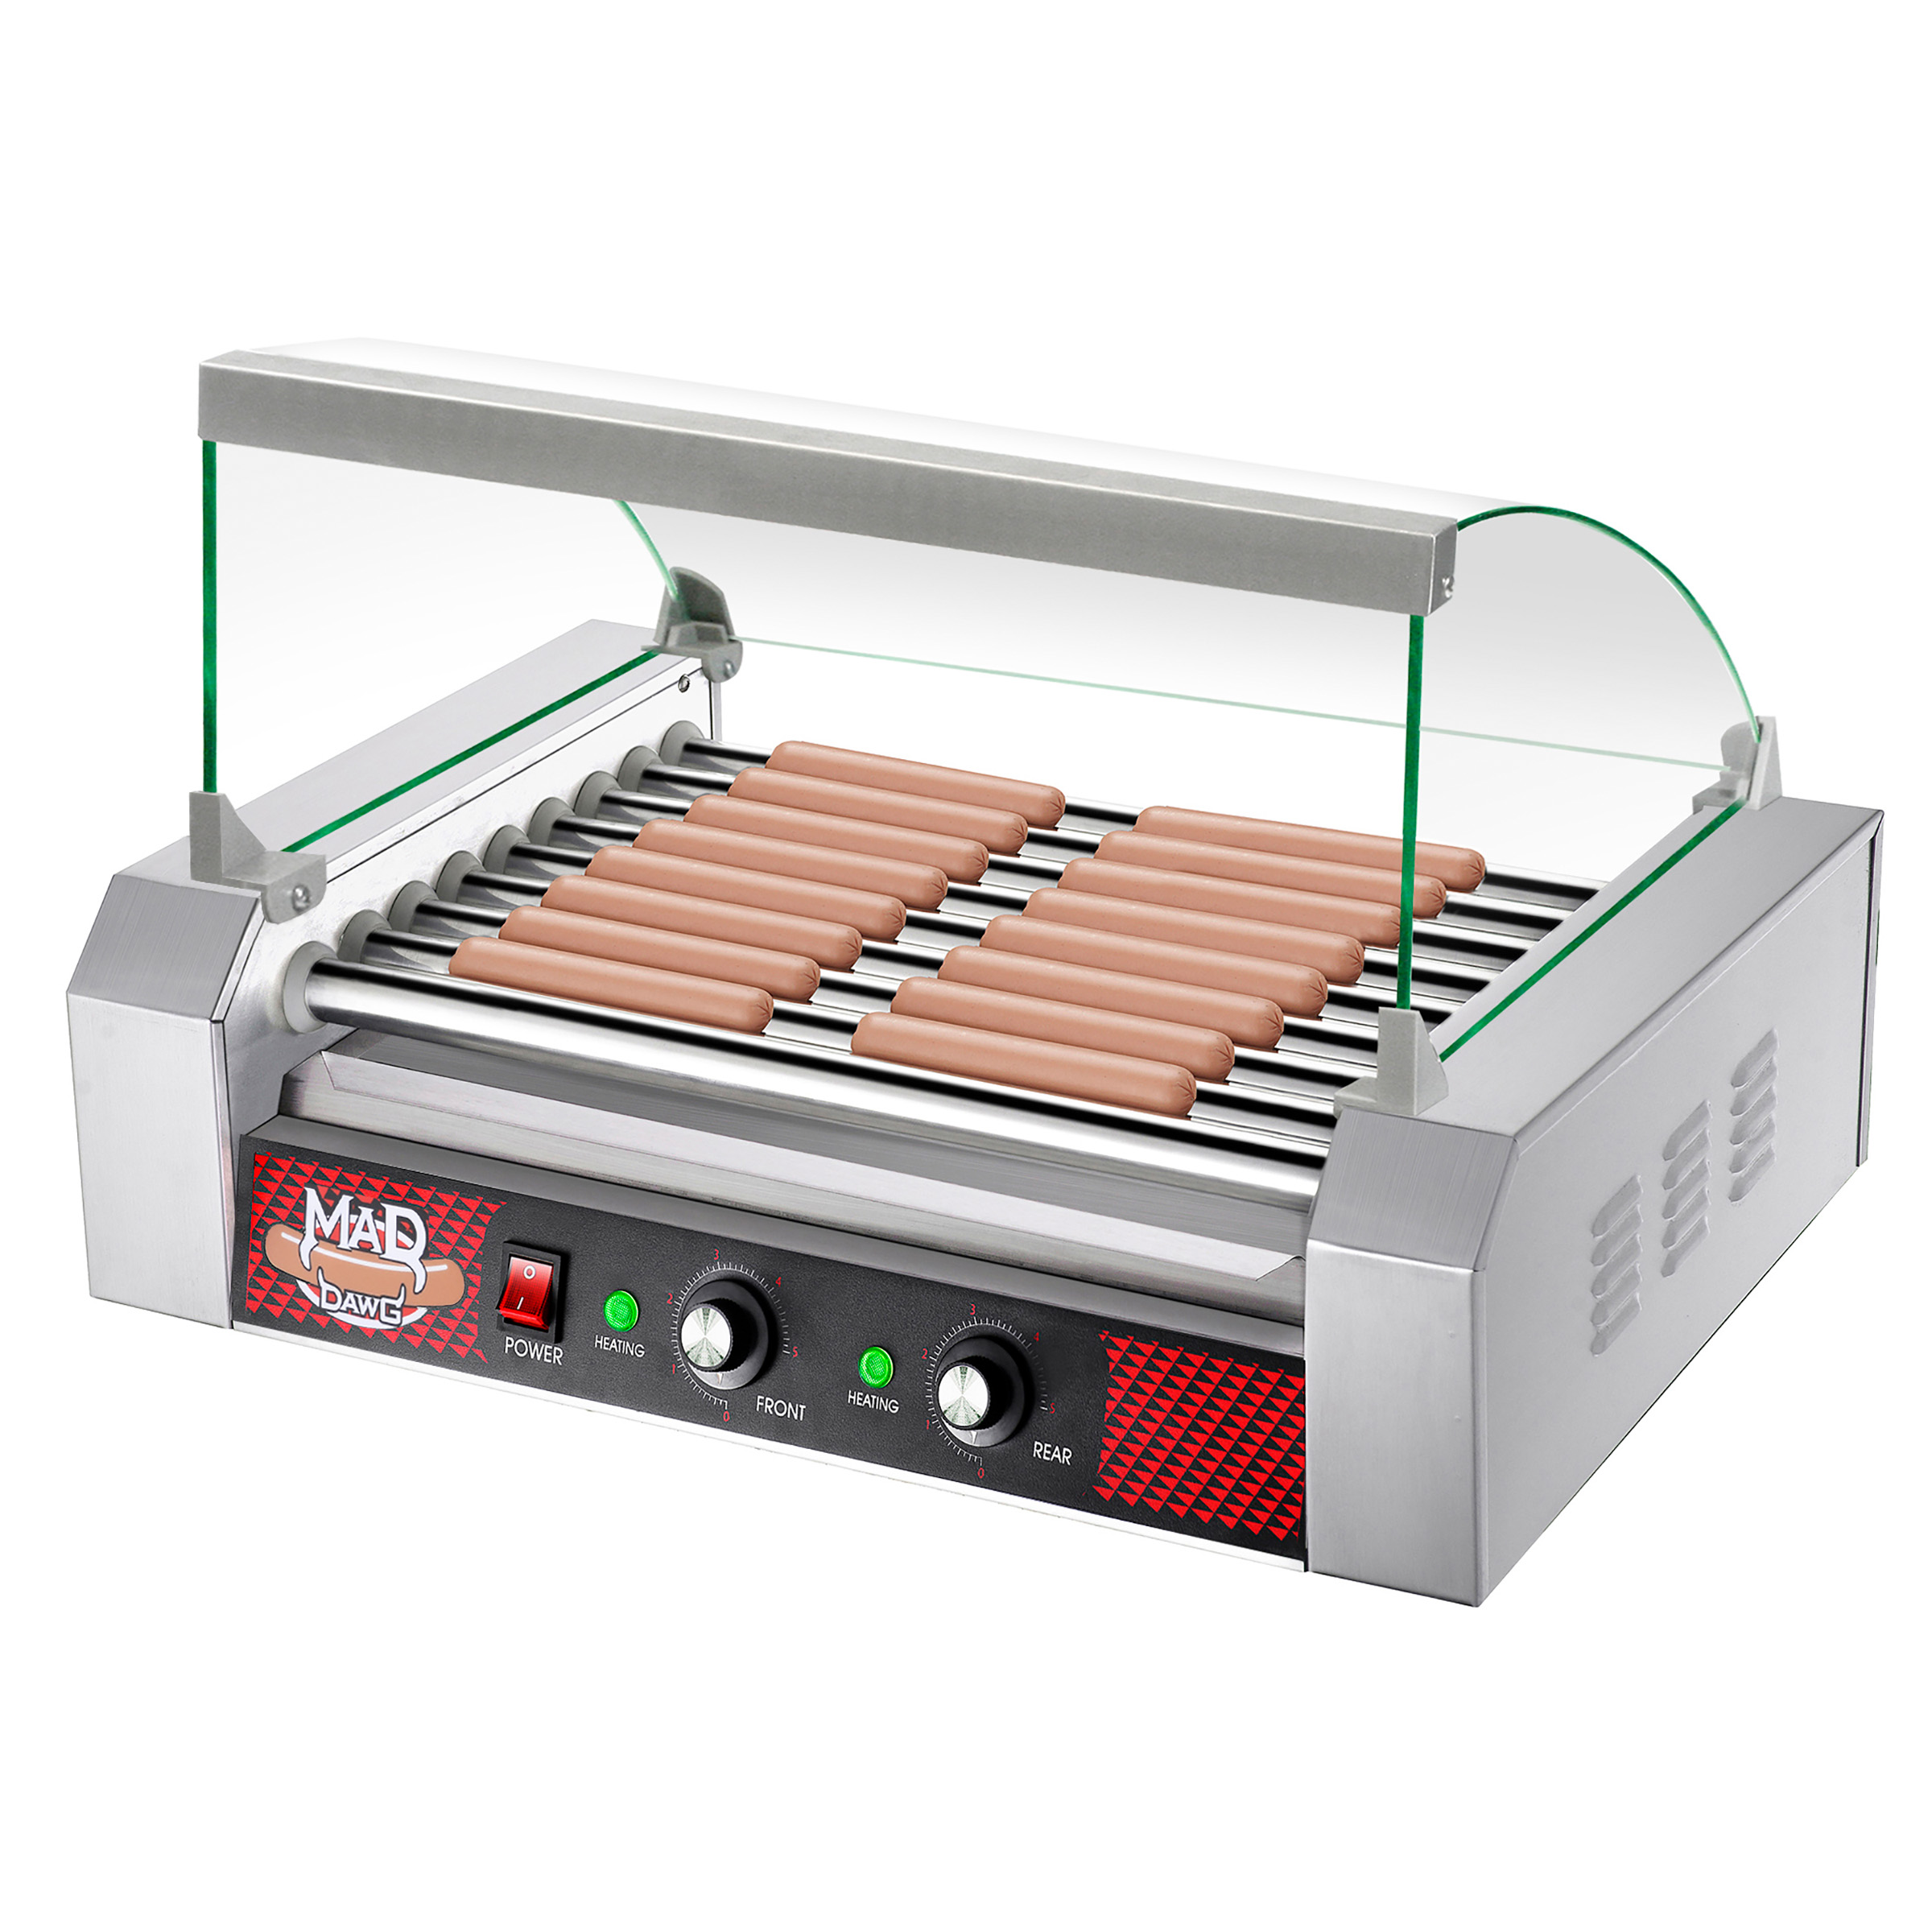 Commercial Quality 24 Hot Dog 9 Roller Grilling Machine W/ Cover 1800Watts by Great Northern Popcorn